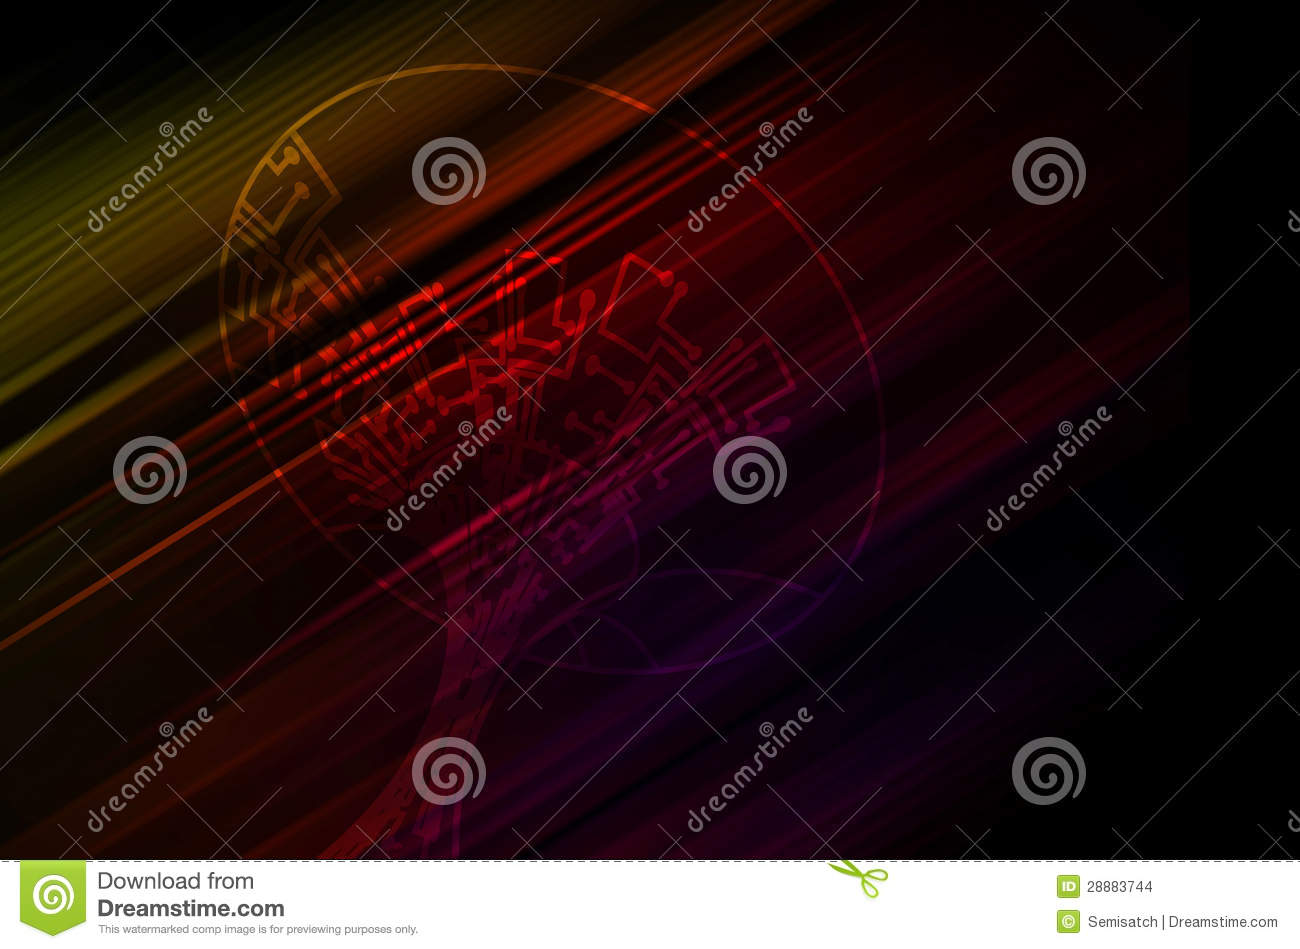 Microchip Background Stock Images - Image: 28883744